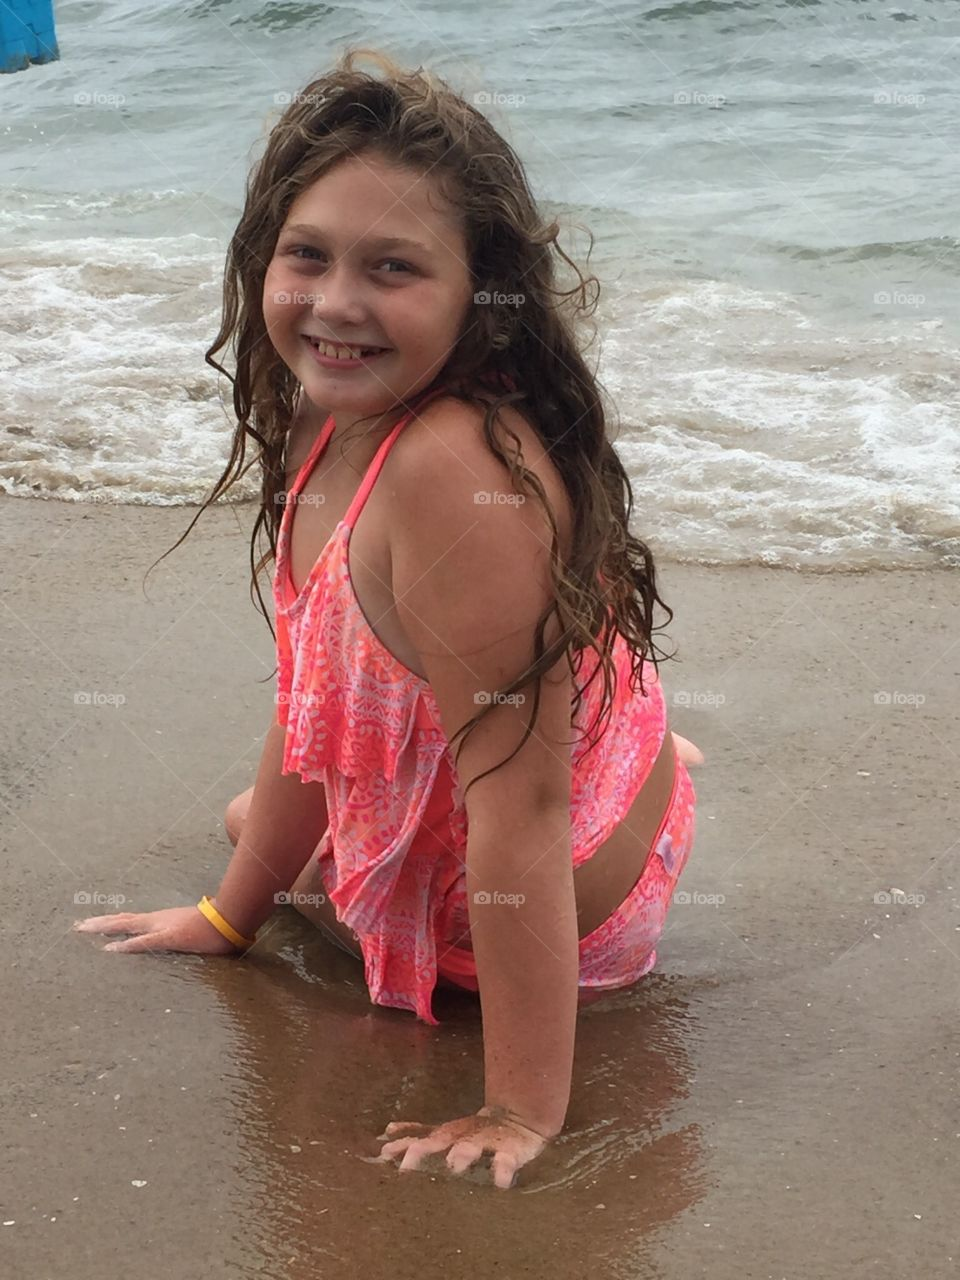 Pretty young girl relaxing in the waves.